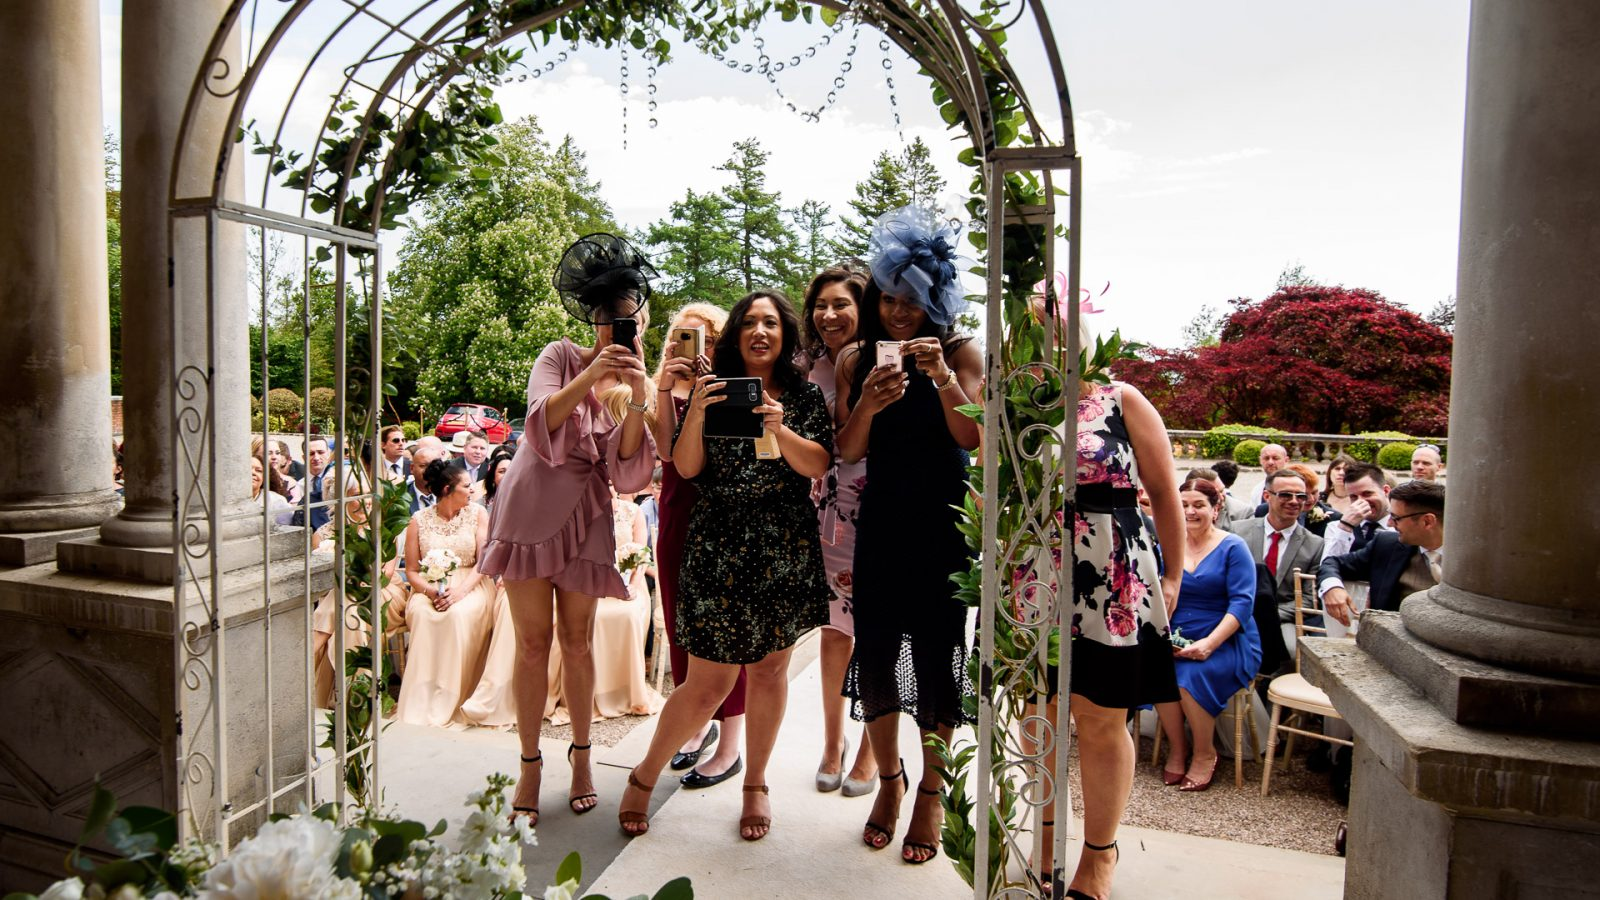 best-wedding-photos-2017-kimberley-and-joseph-wedding-guests-taking-pictures